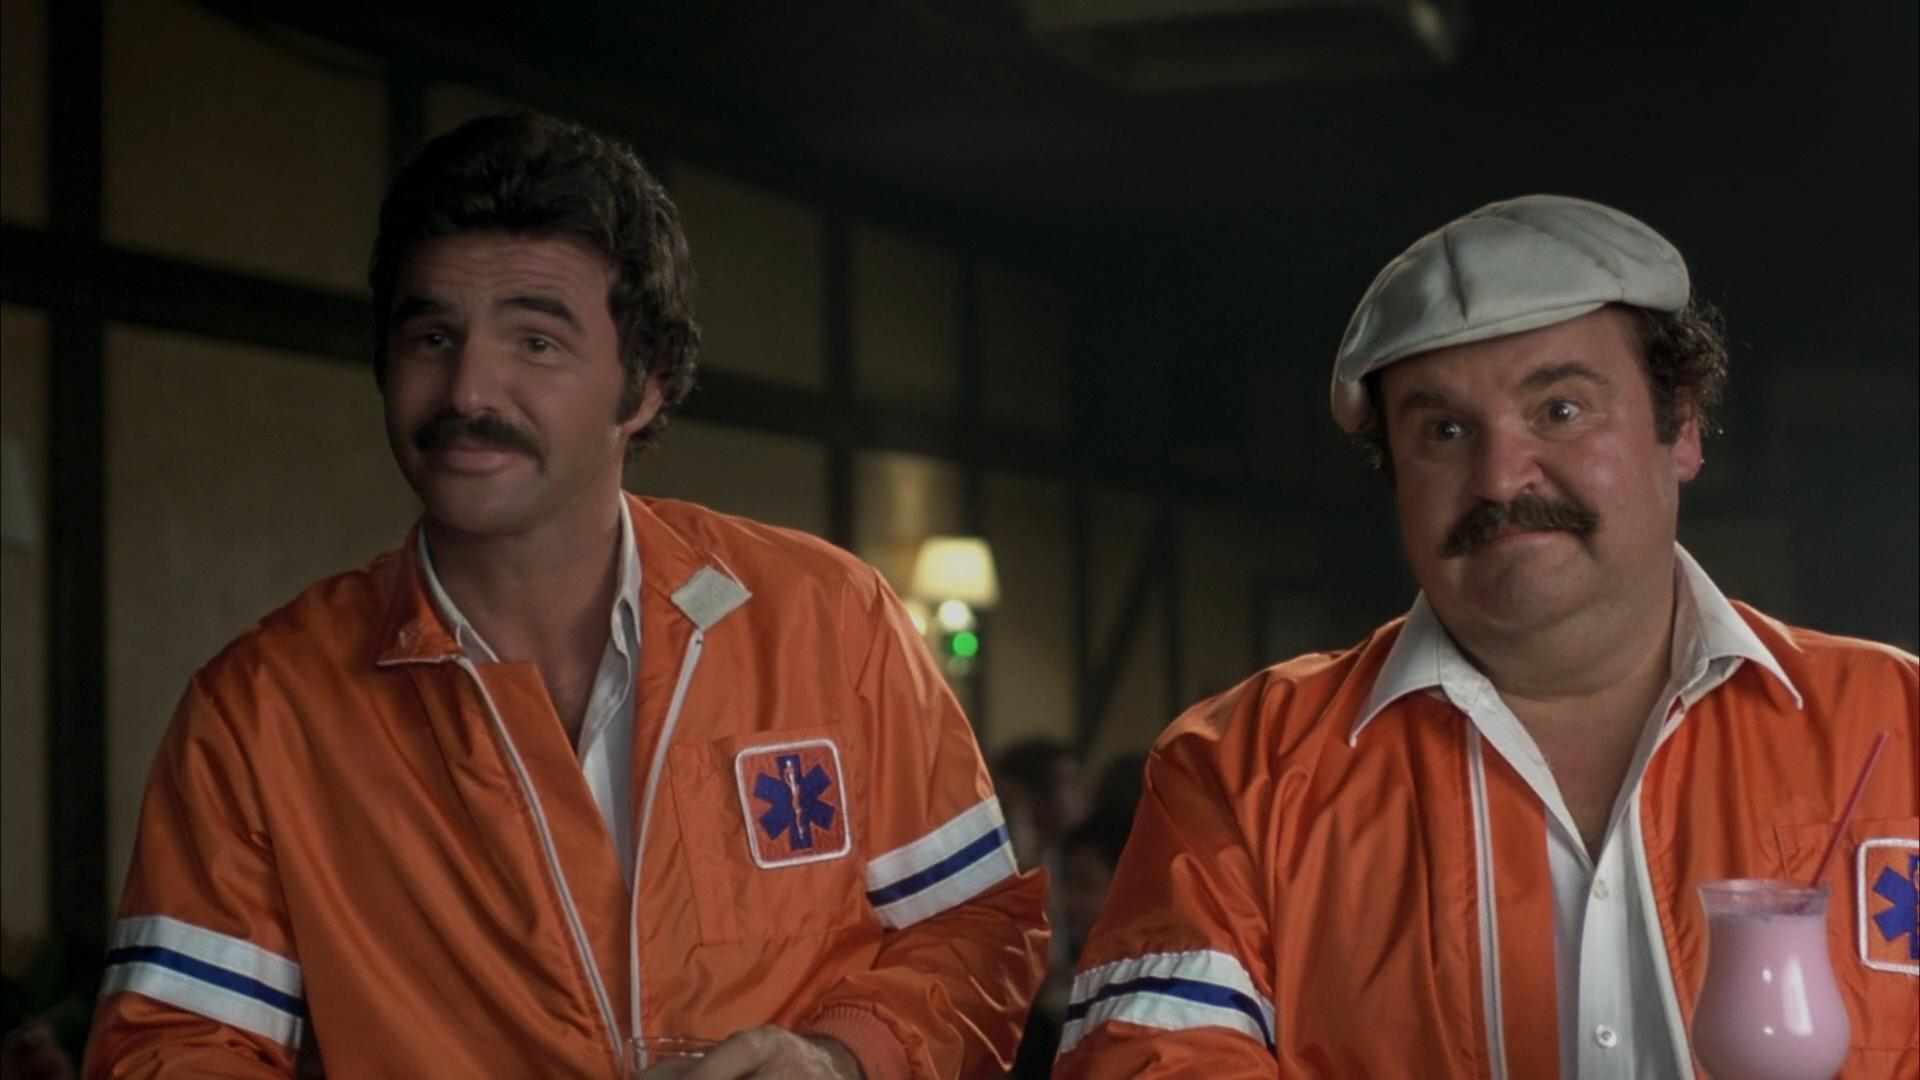 CANNONBALL RUN TO BE REMADE BECAUSE SOMEONE ON TWITTER SUGGESTED IT